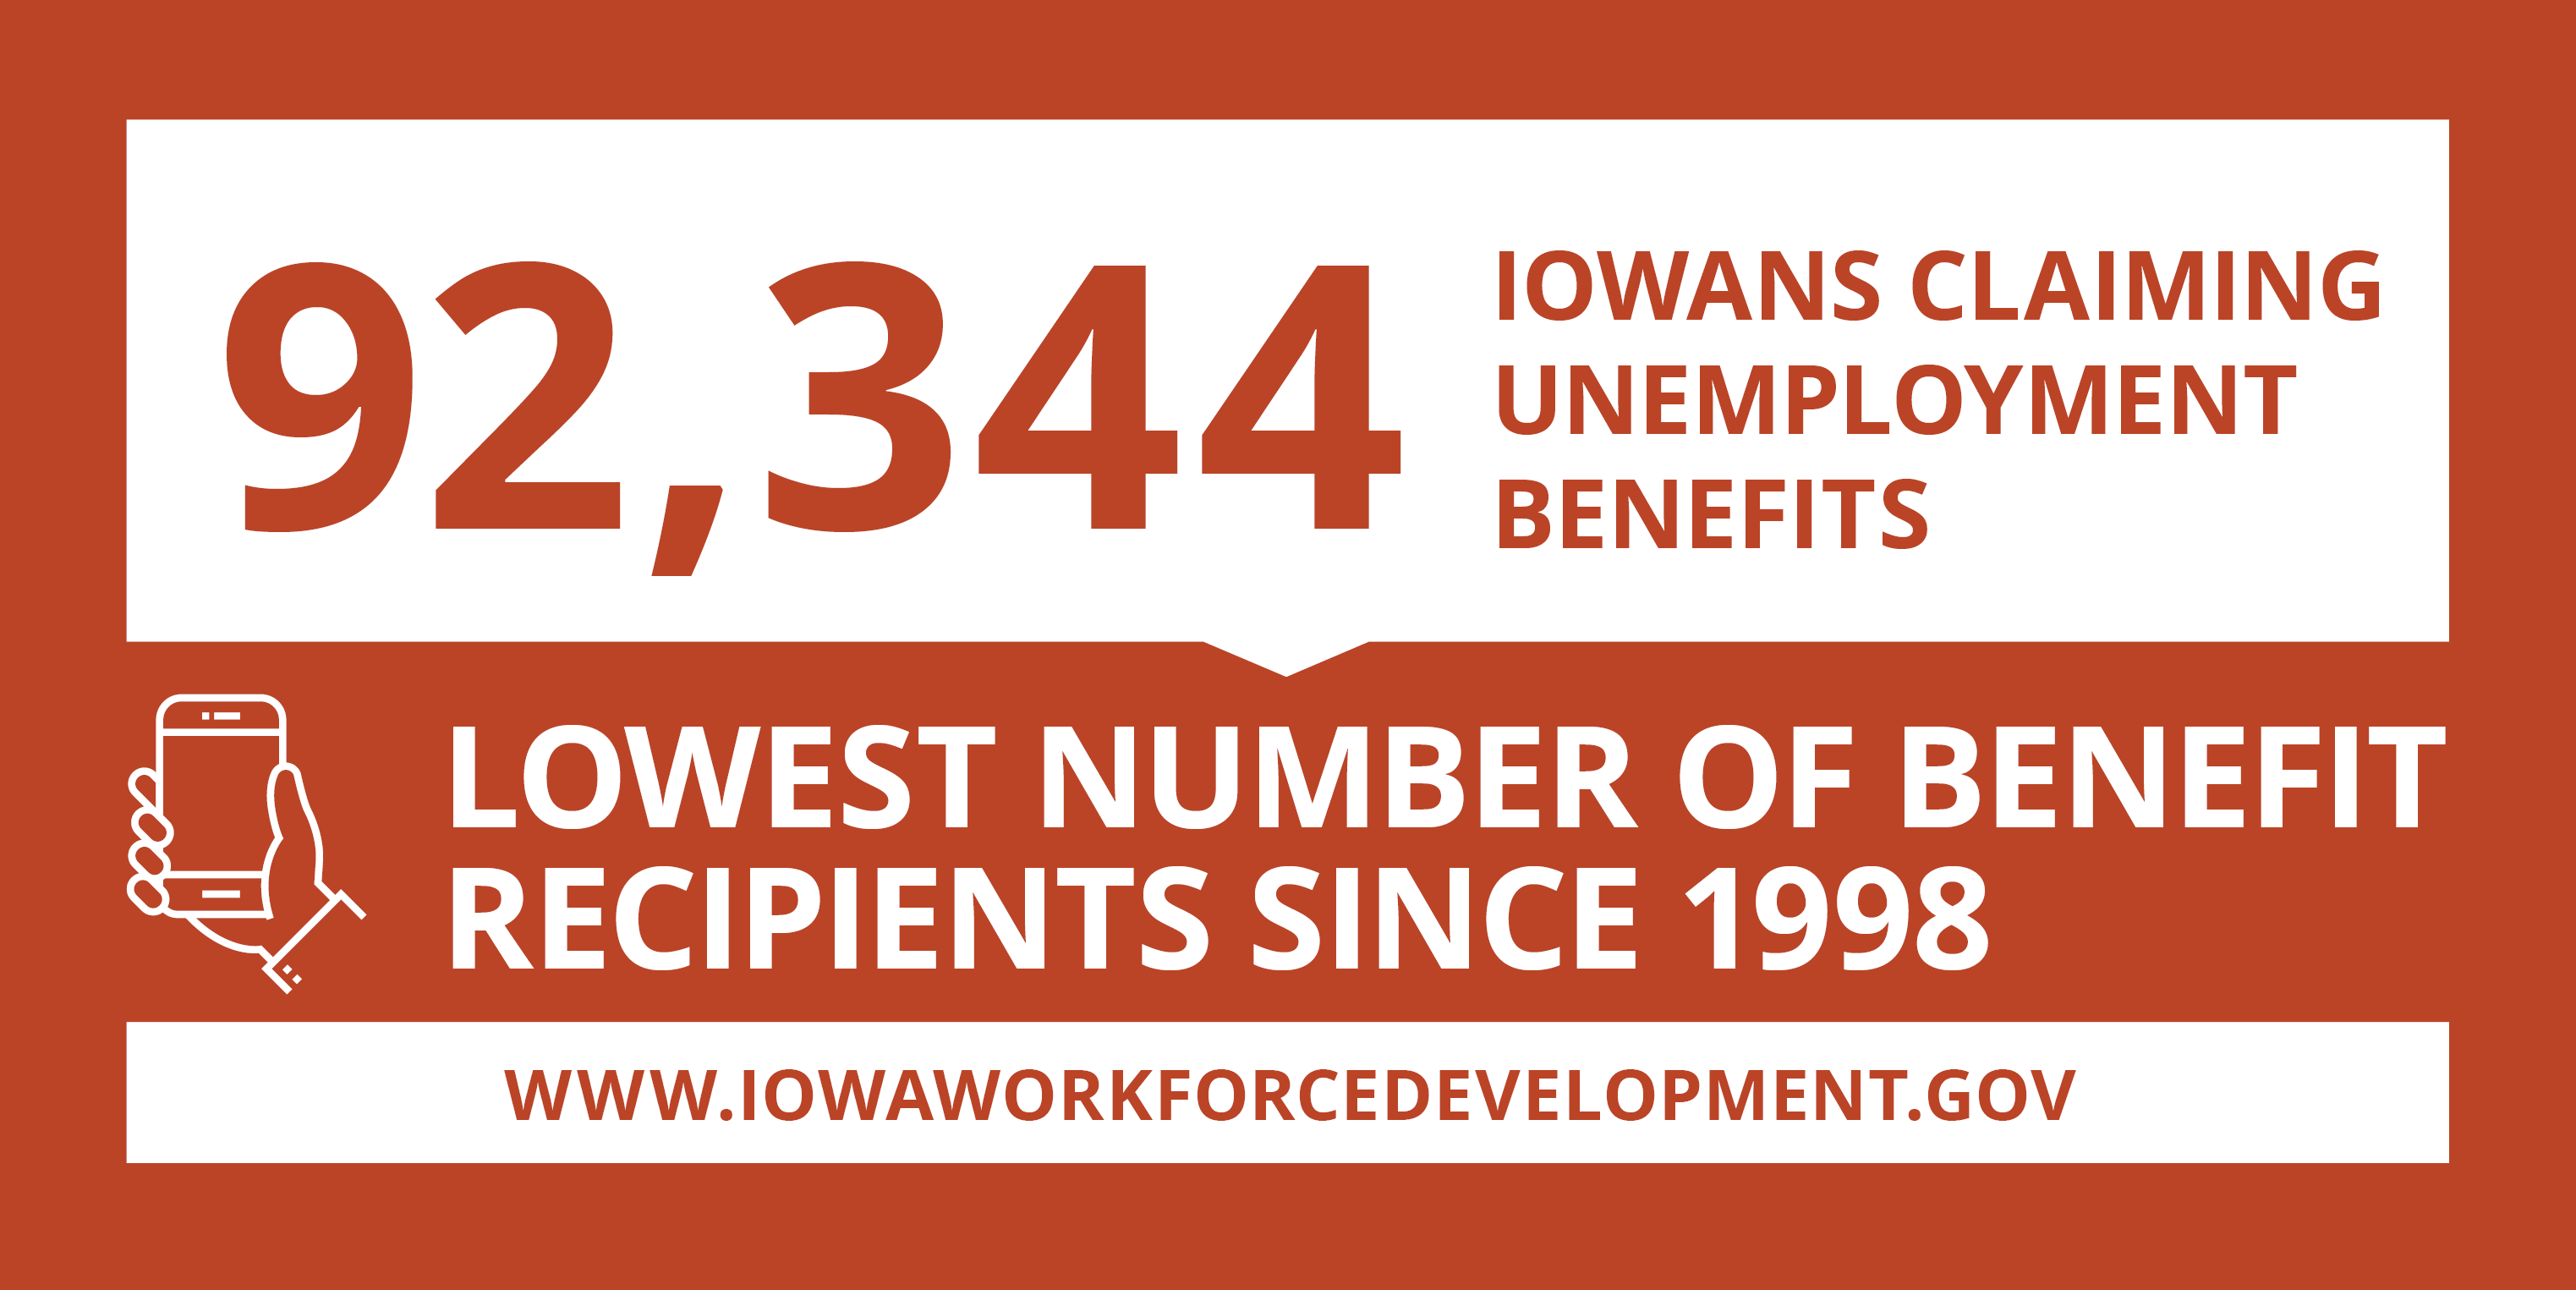 The lowest number of unemployment insurance benefit recipients since 1988